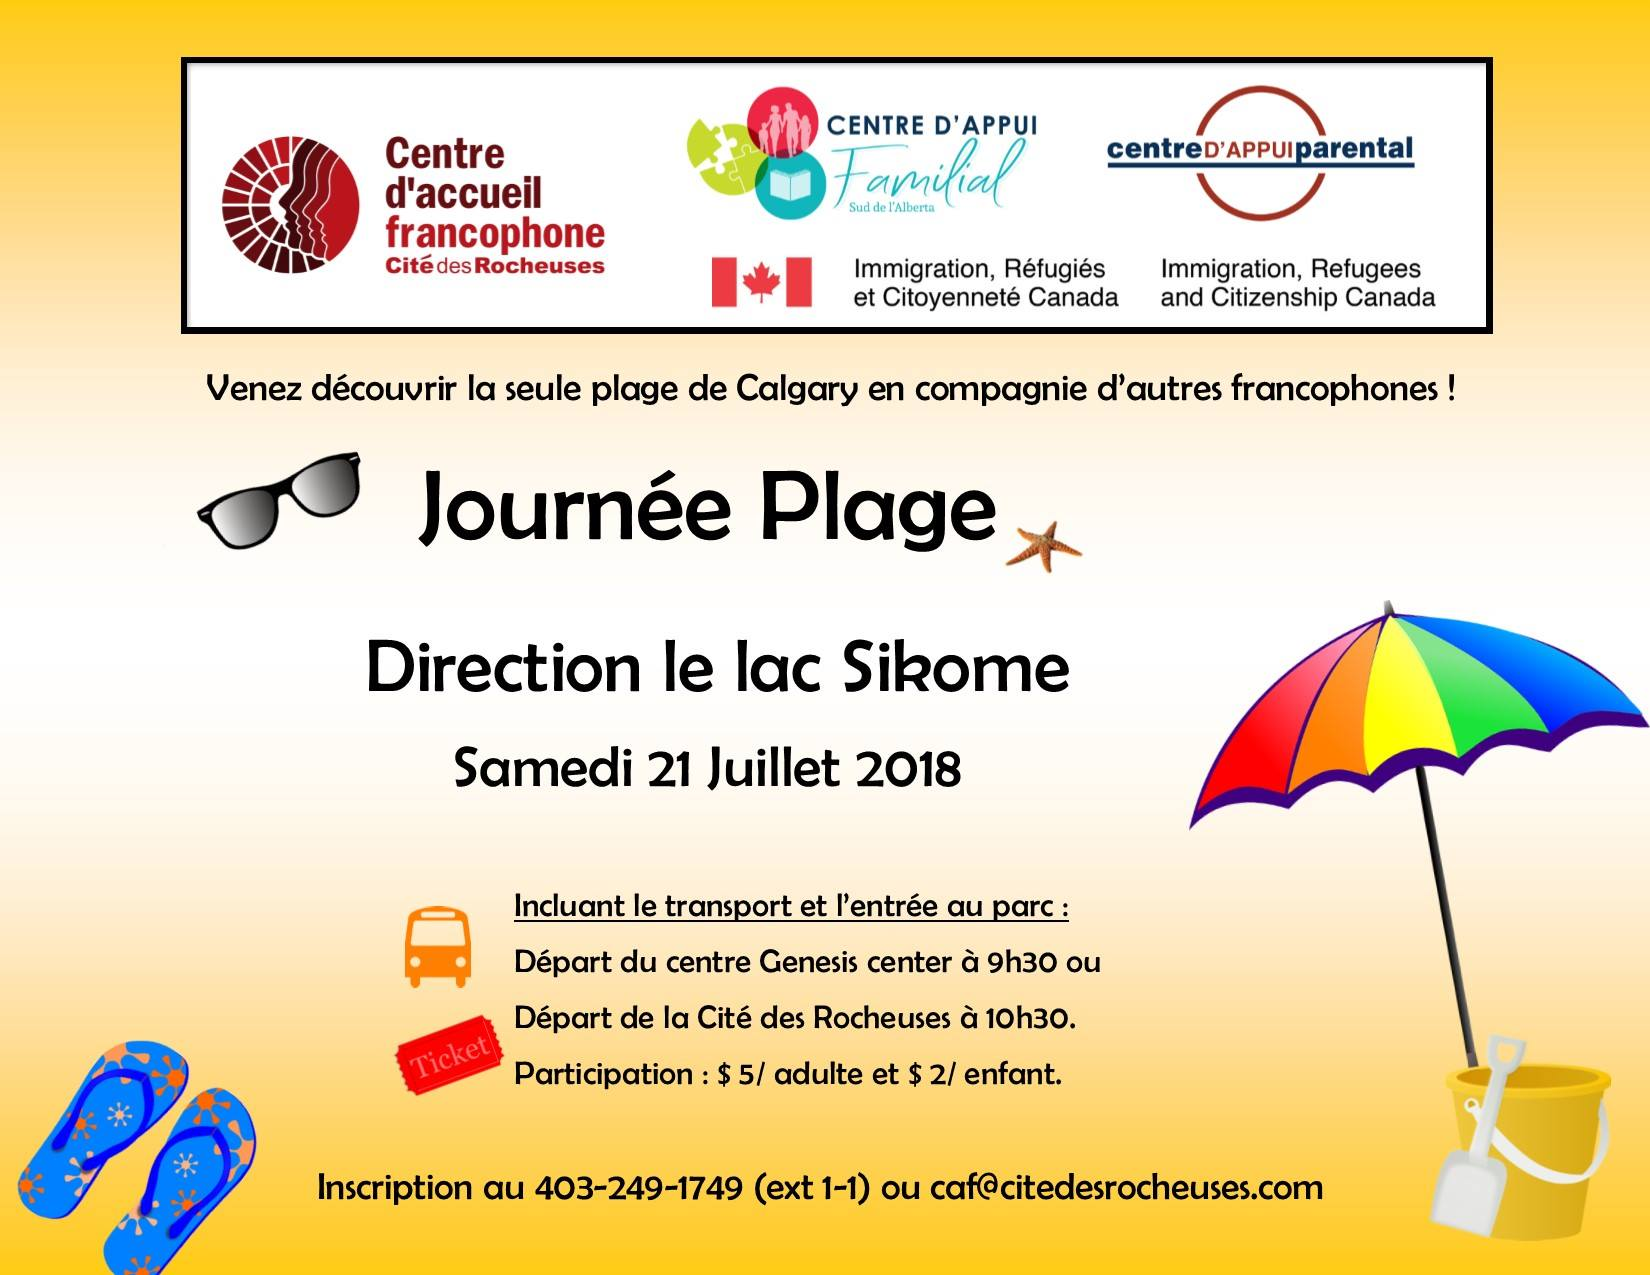 Journée Plage au Lac Sikome – Transport inclus !